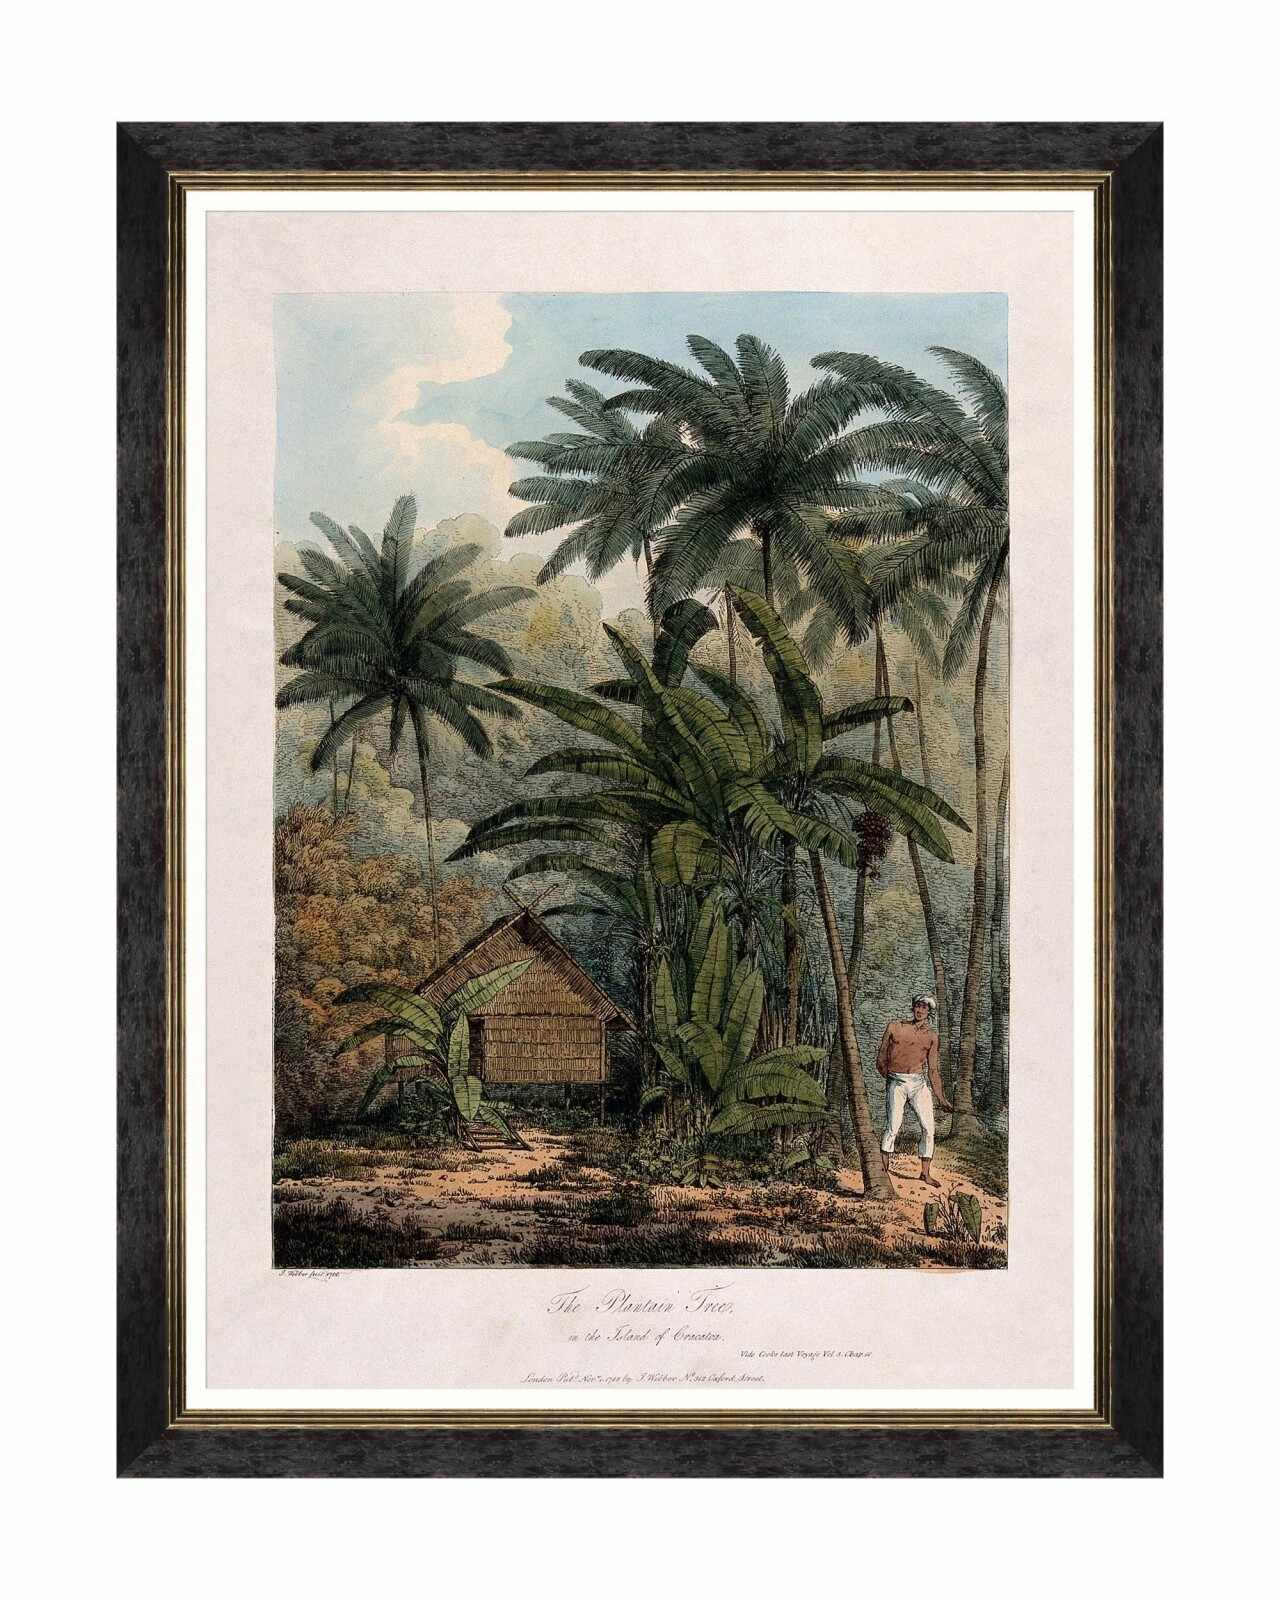 Tablou Framed Art Trees Of Krakatoa - The Plantain Tree, 60 x 80 cm